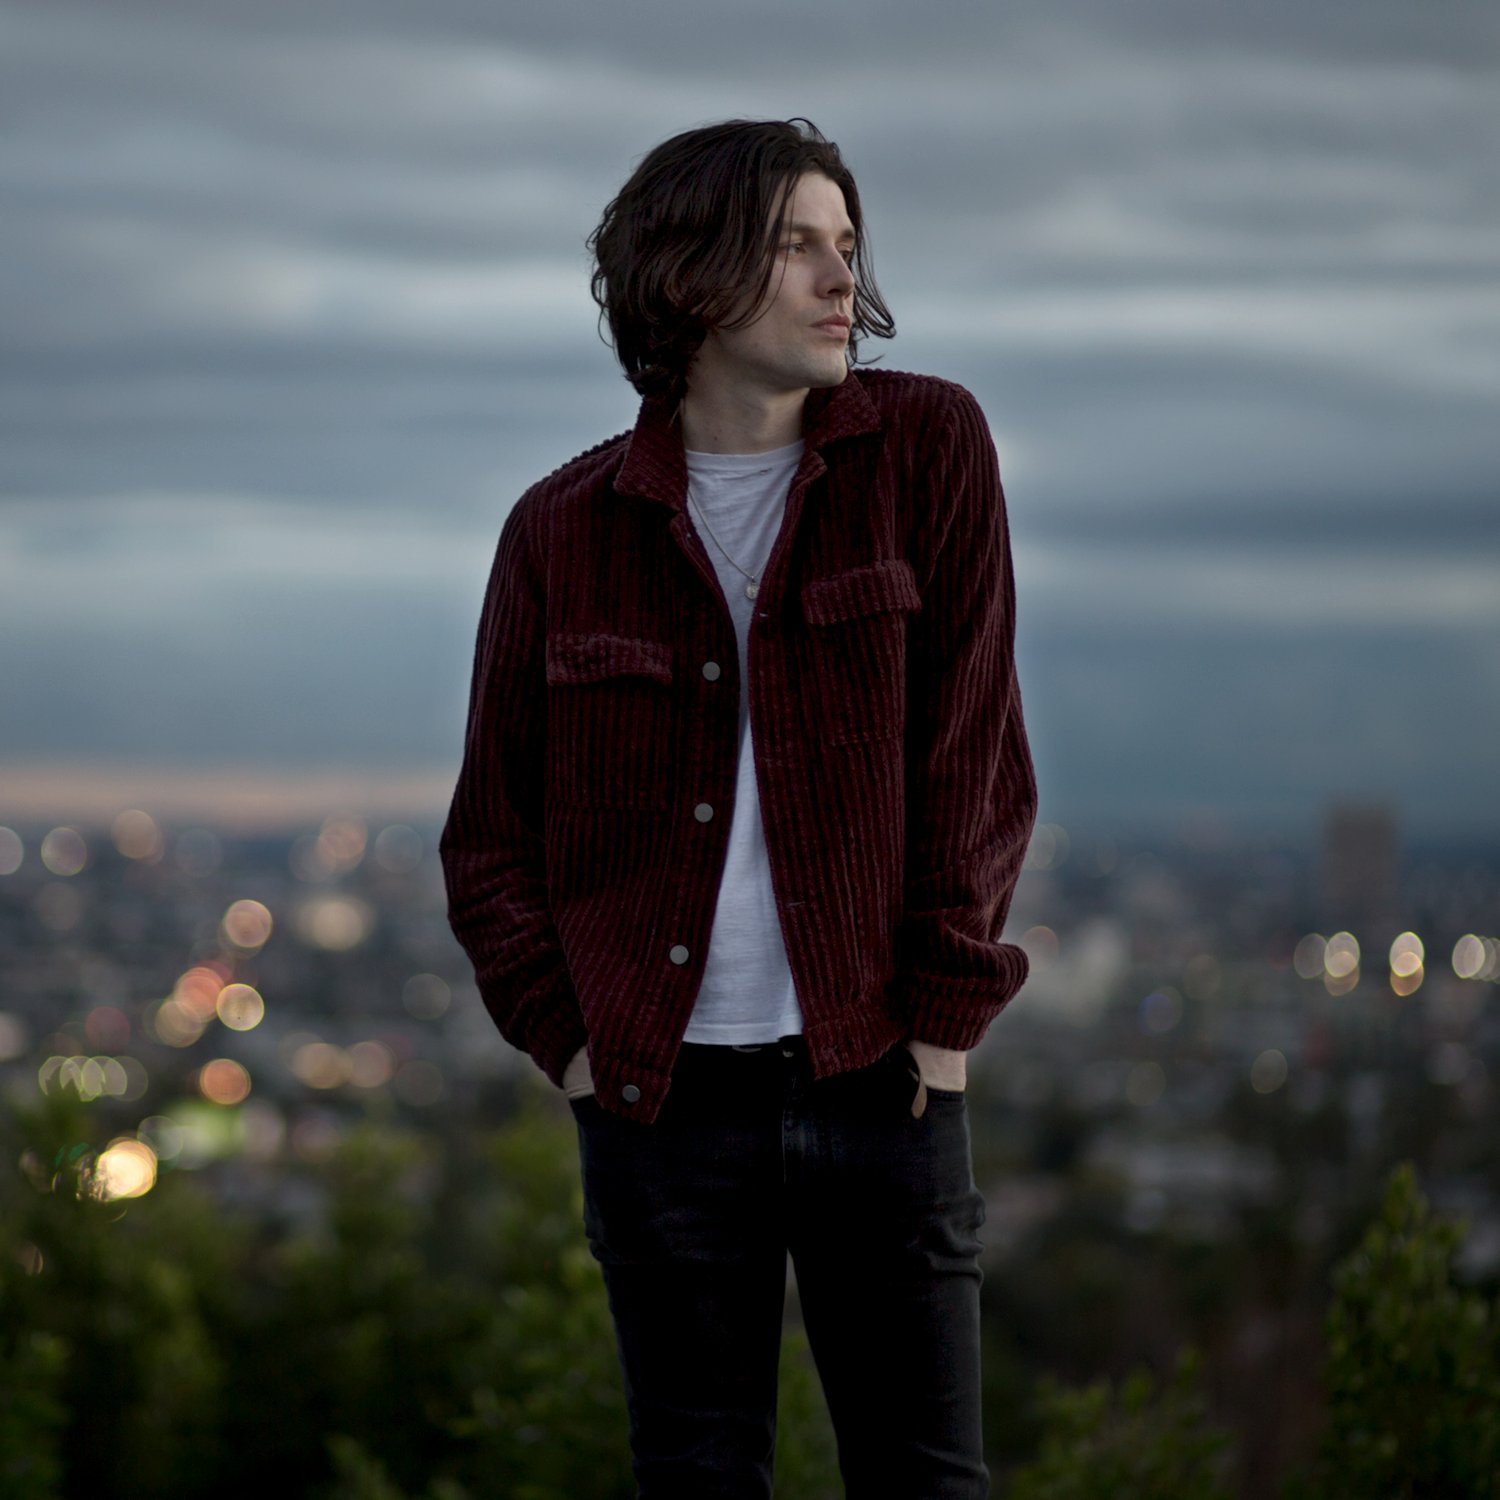 james bay running free mp3 download